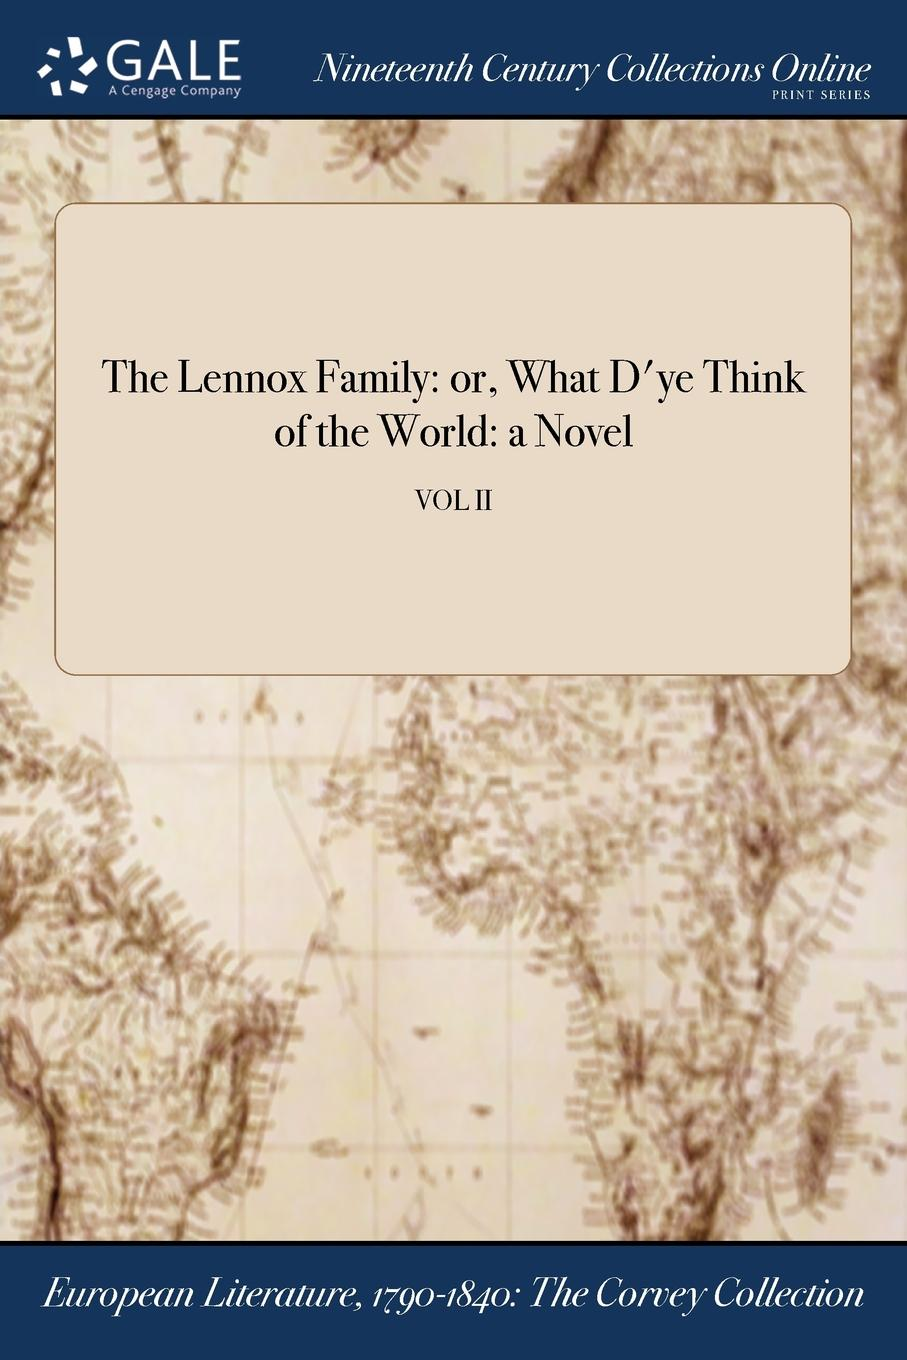 The Lennox Family. or, What D.ye Think of the World: a Novel; VOL II